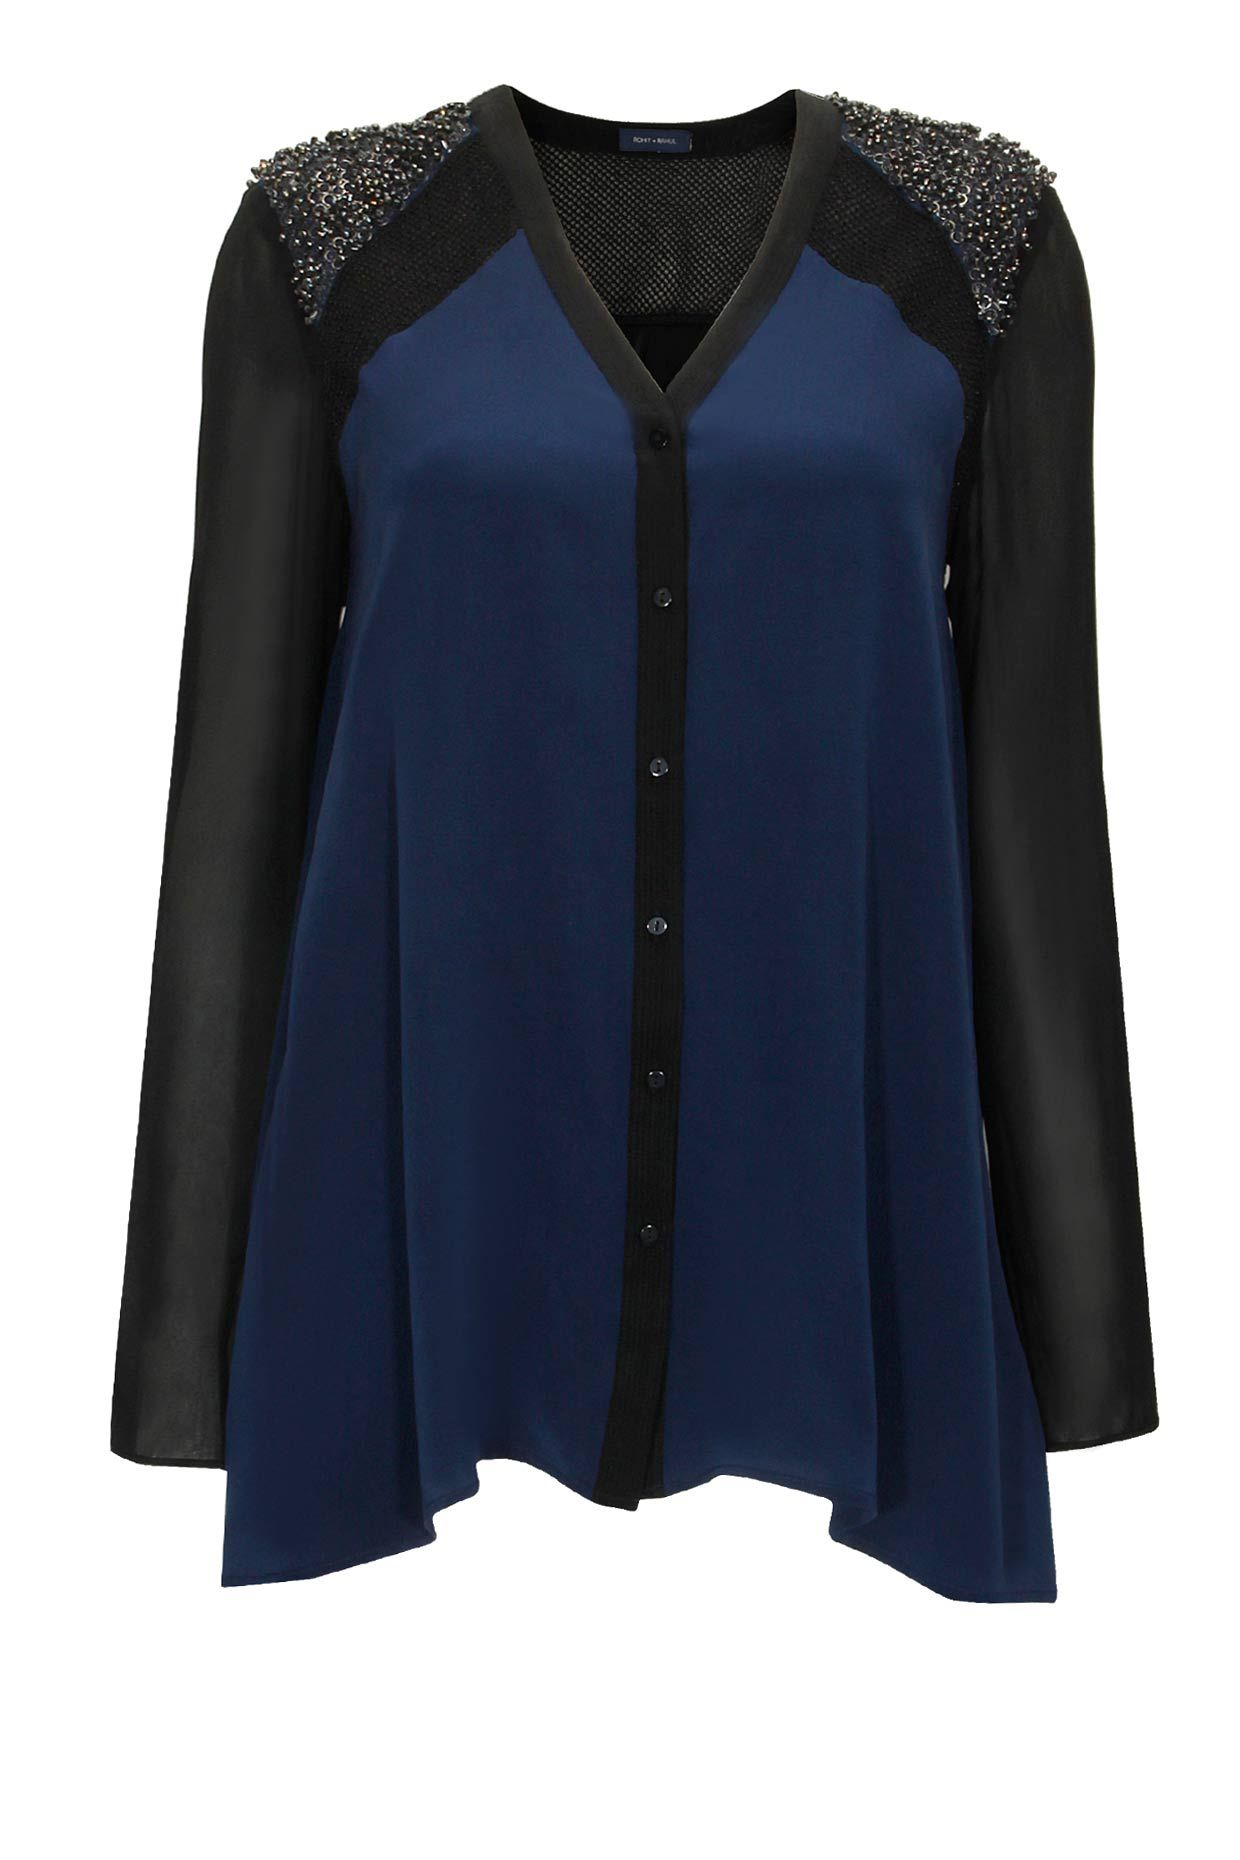 Navy and black colour blocked beaded shirt available only at Pernia's Pop-Up Shop.